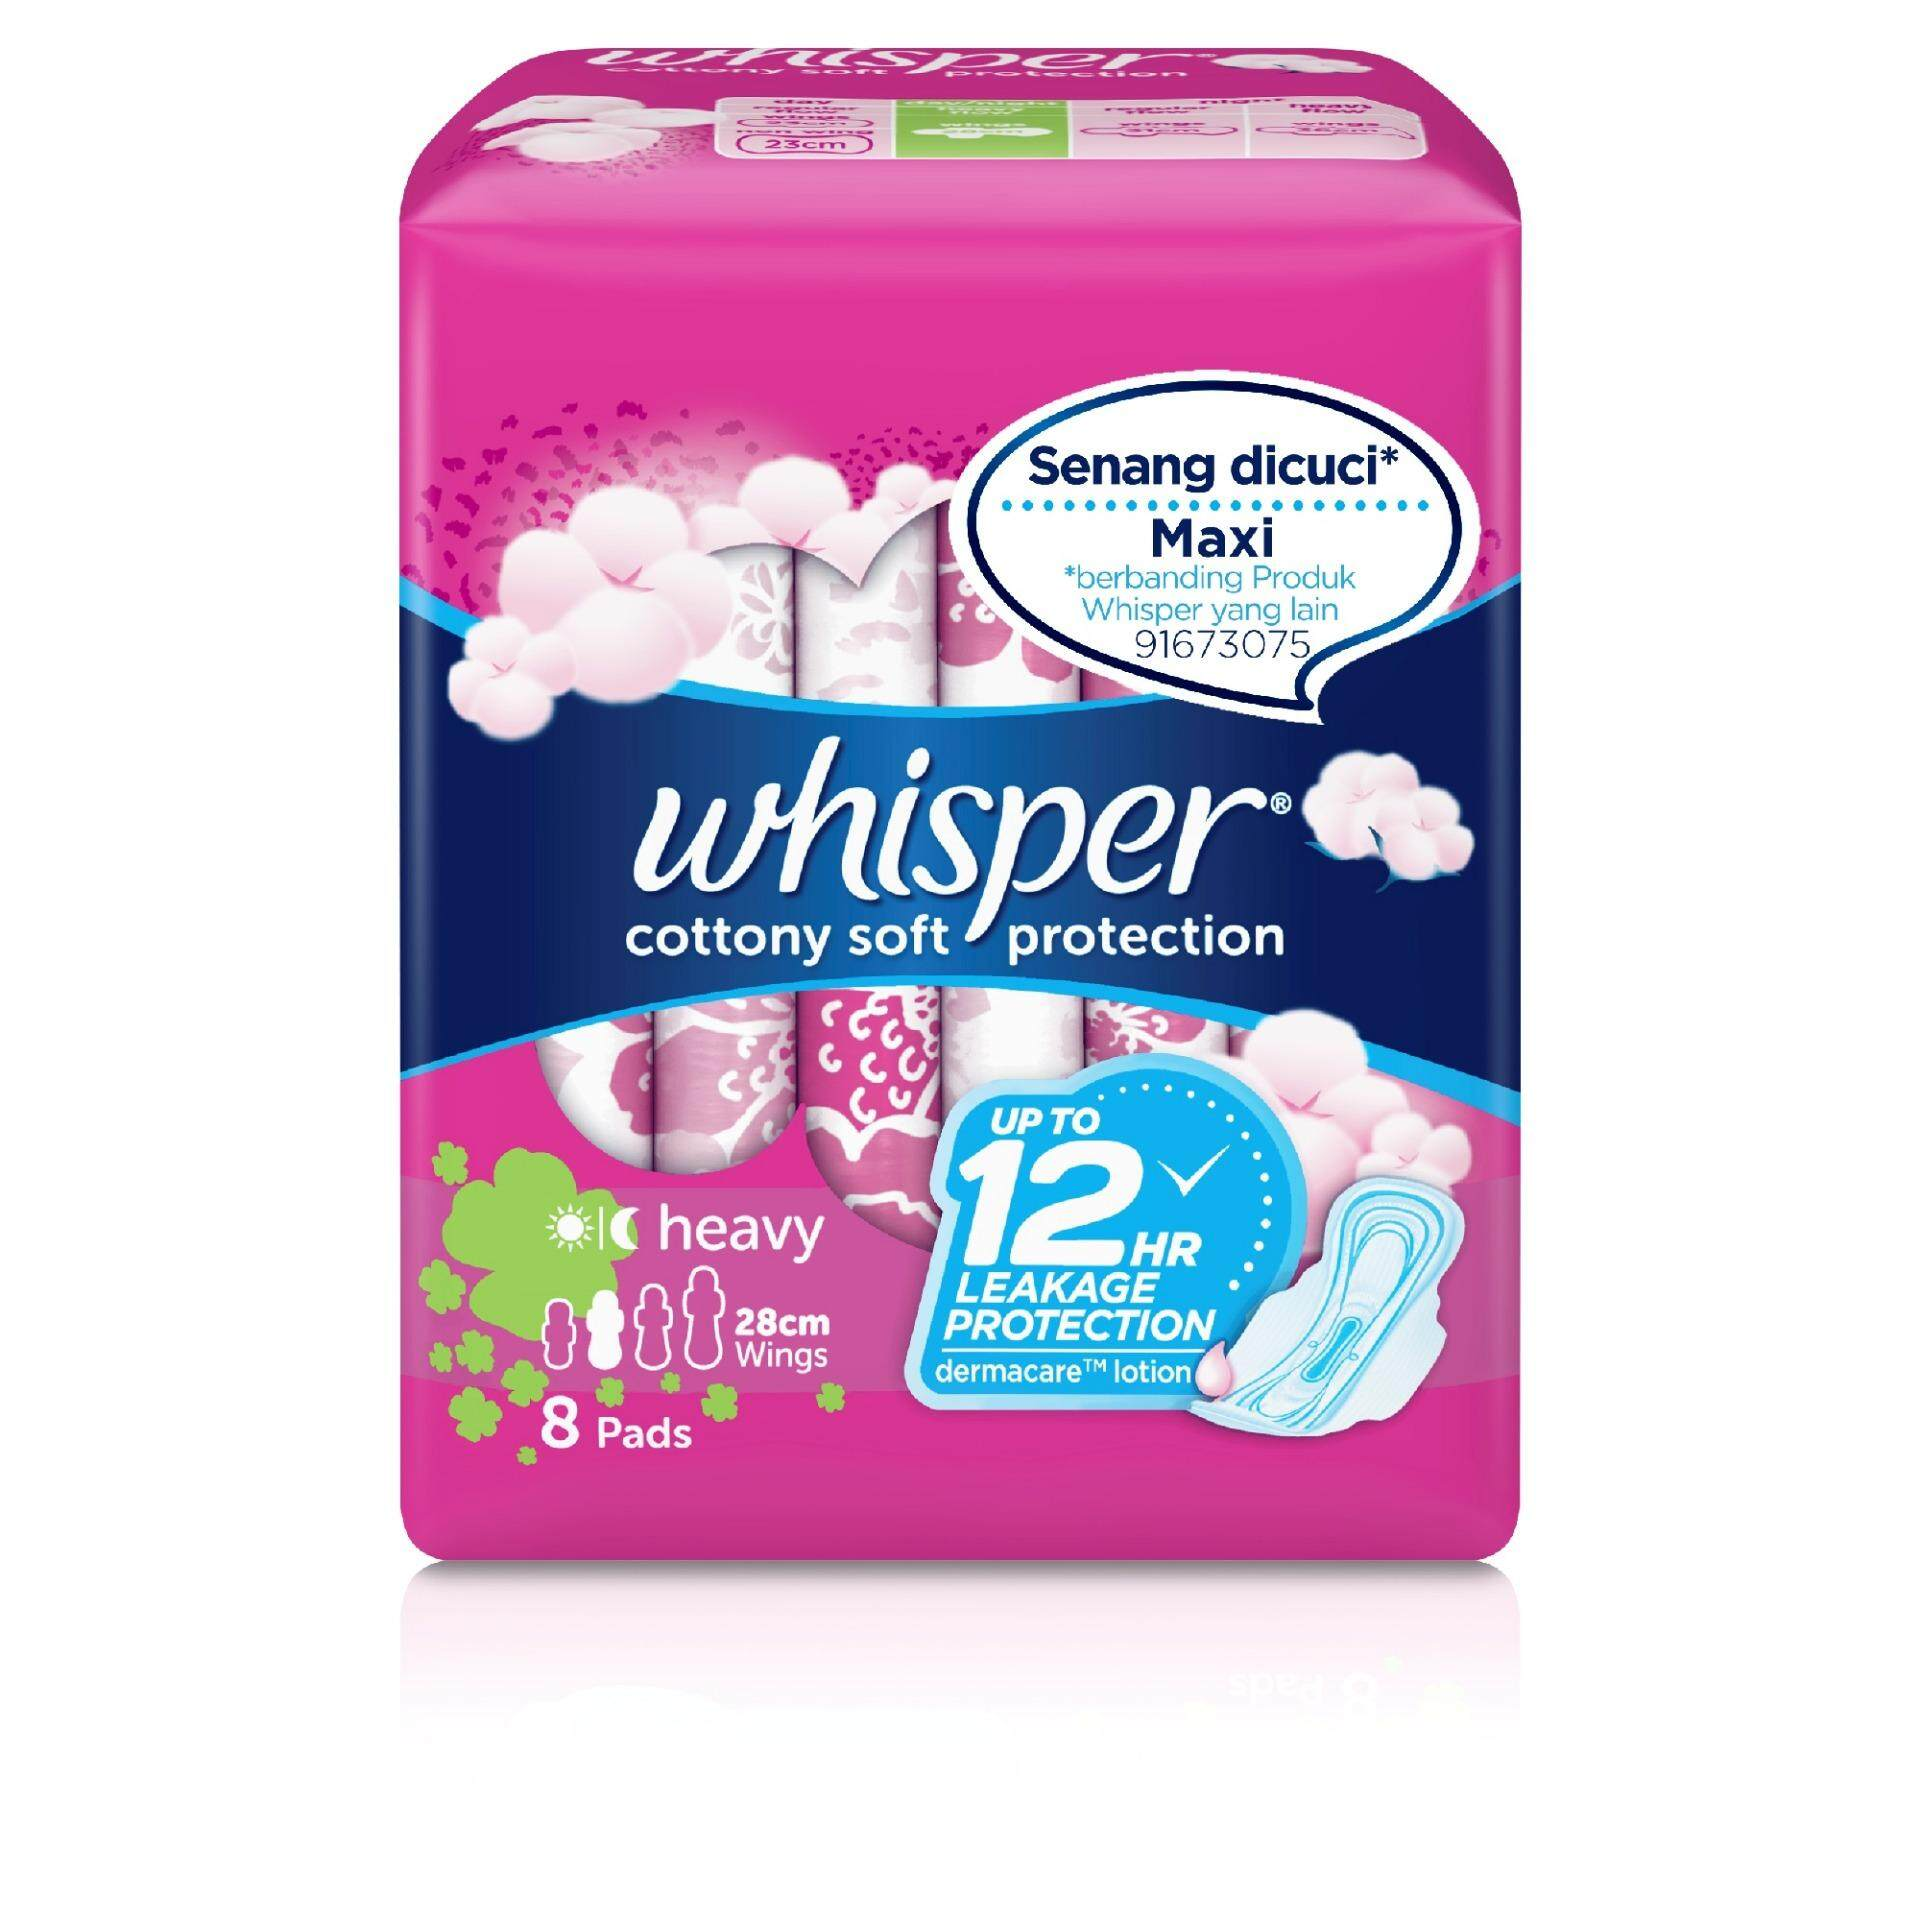 Whisper Cottony Soft Protection Heavy Flow 28cm Sanitary Pads With Wings 8 pads